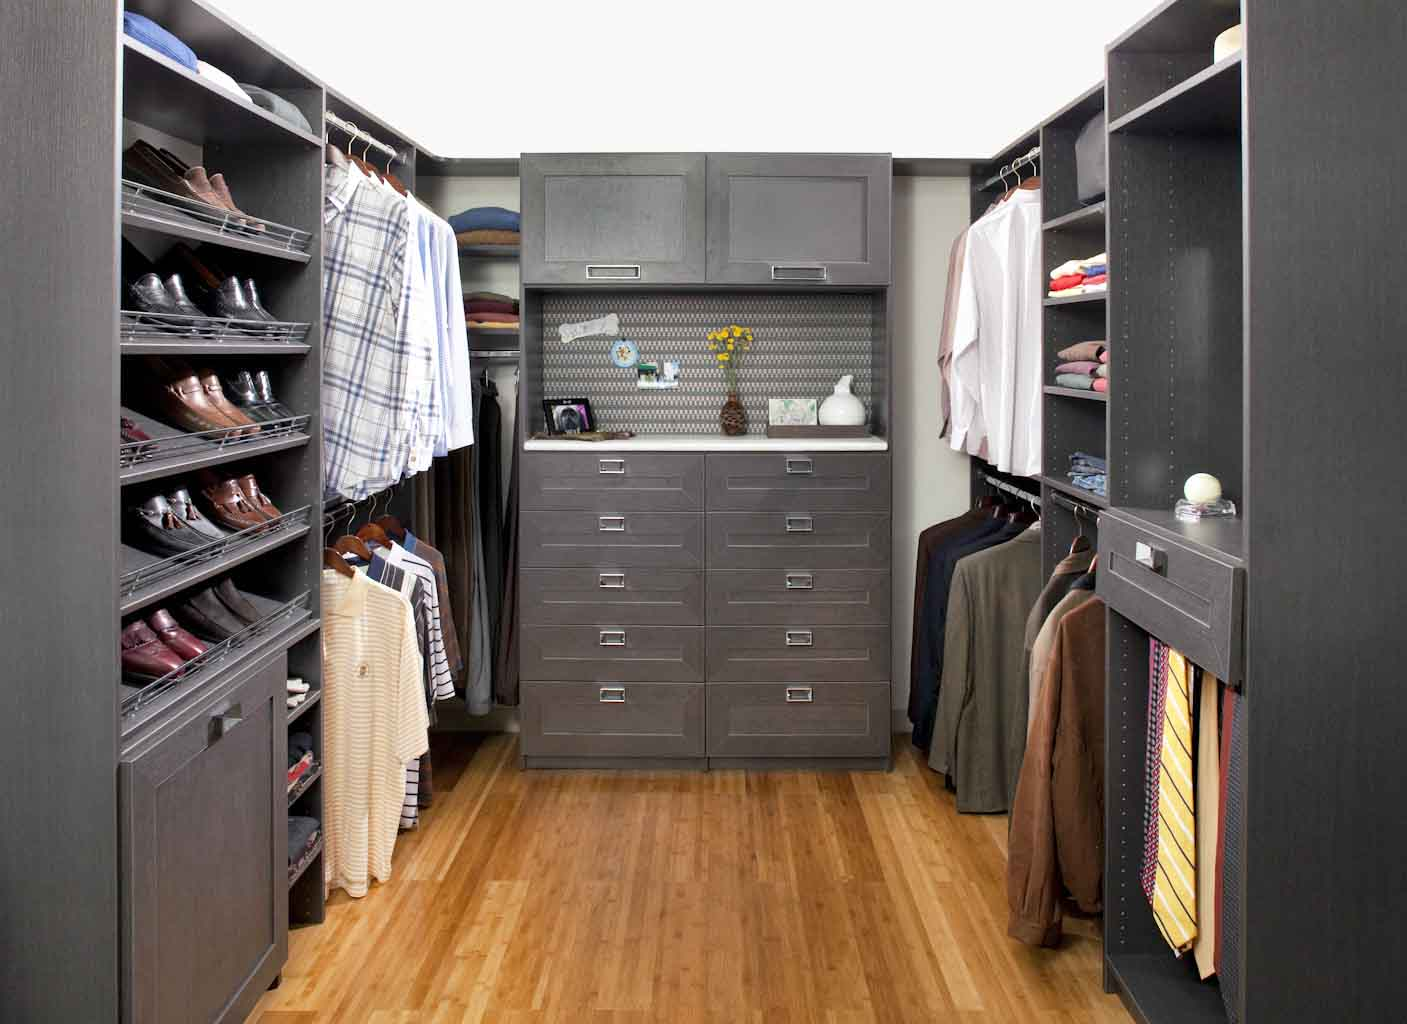 Walk in closet system and organizer for him